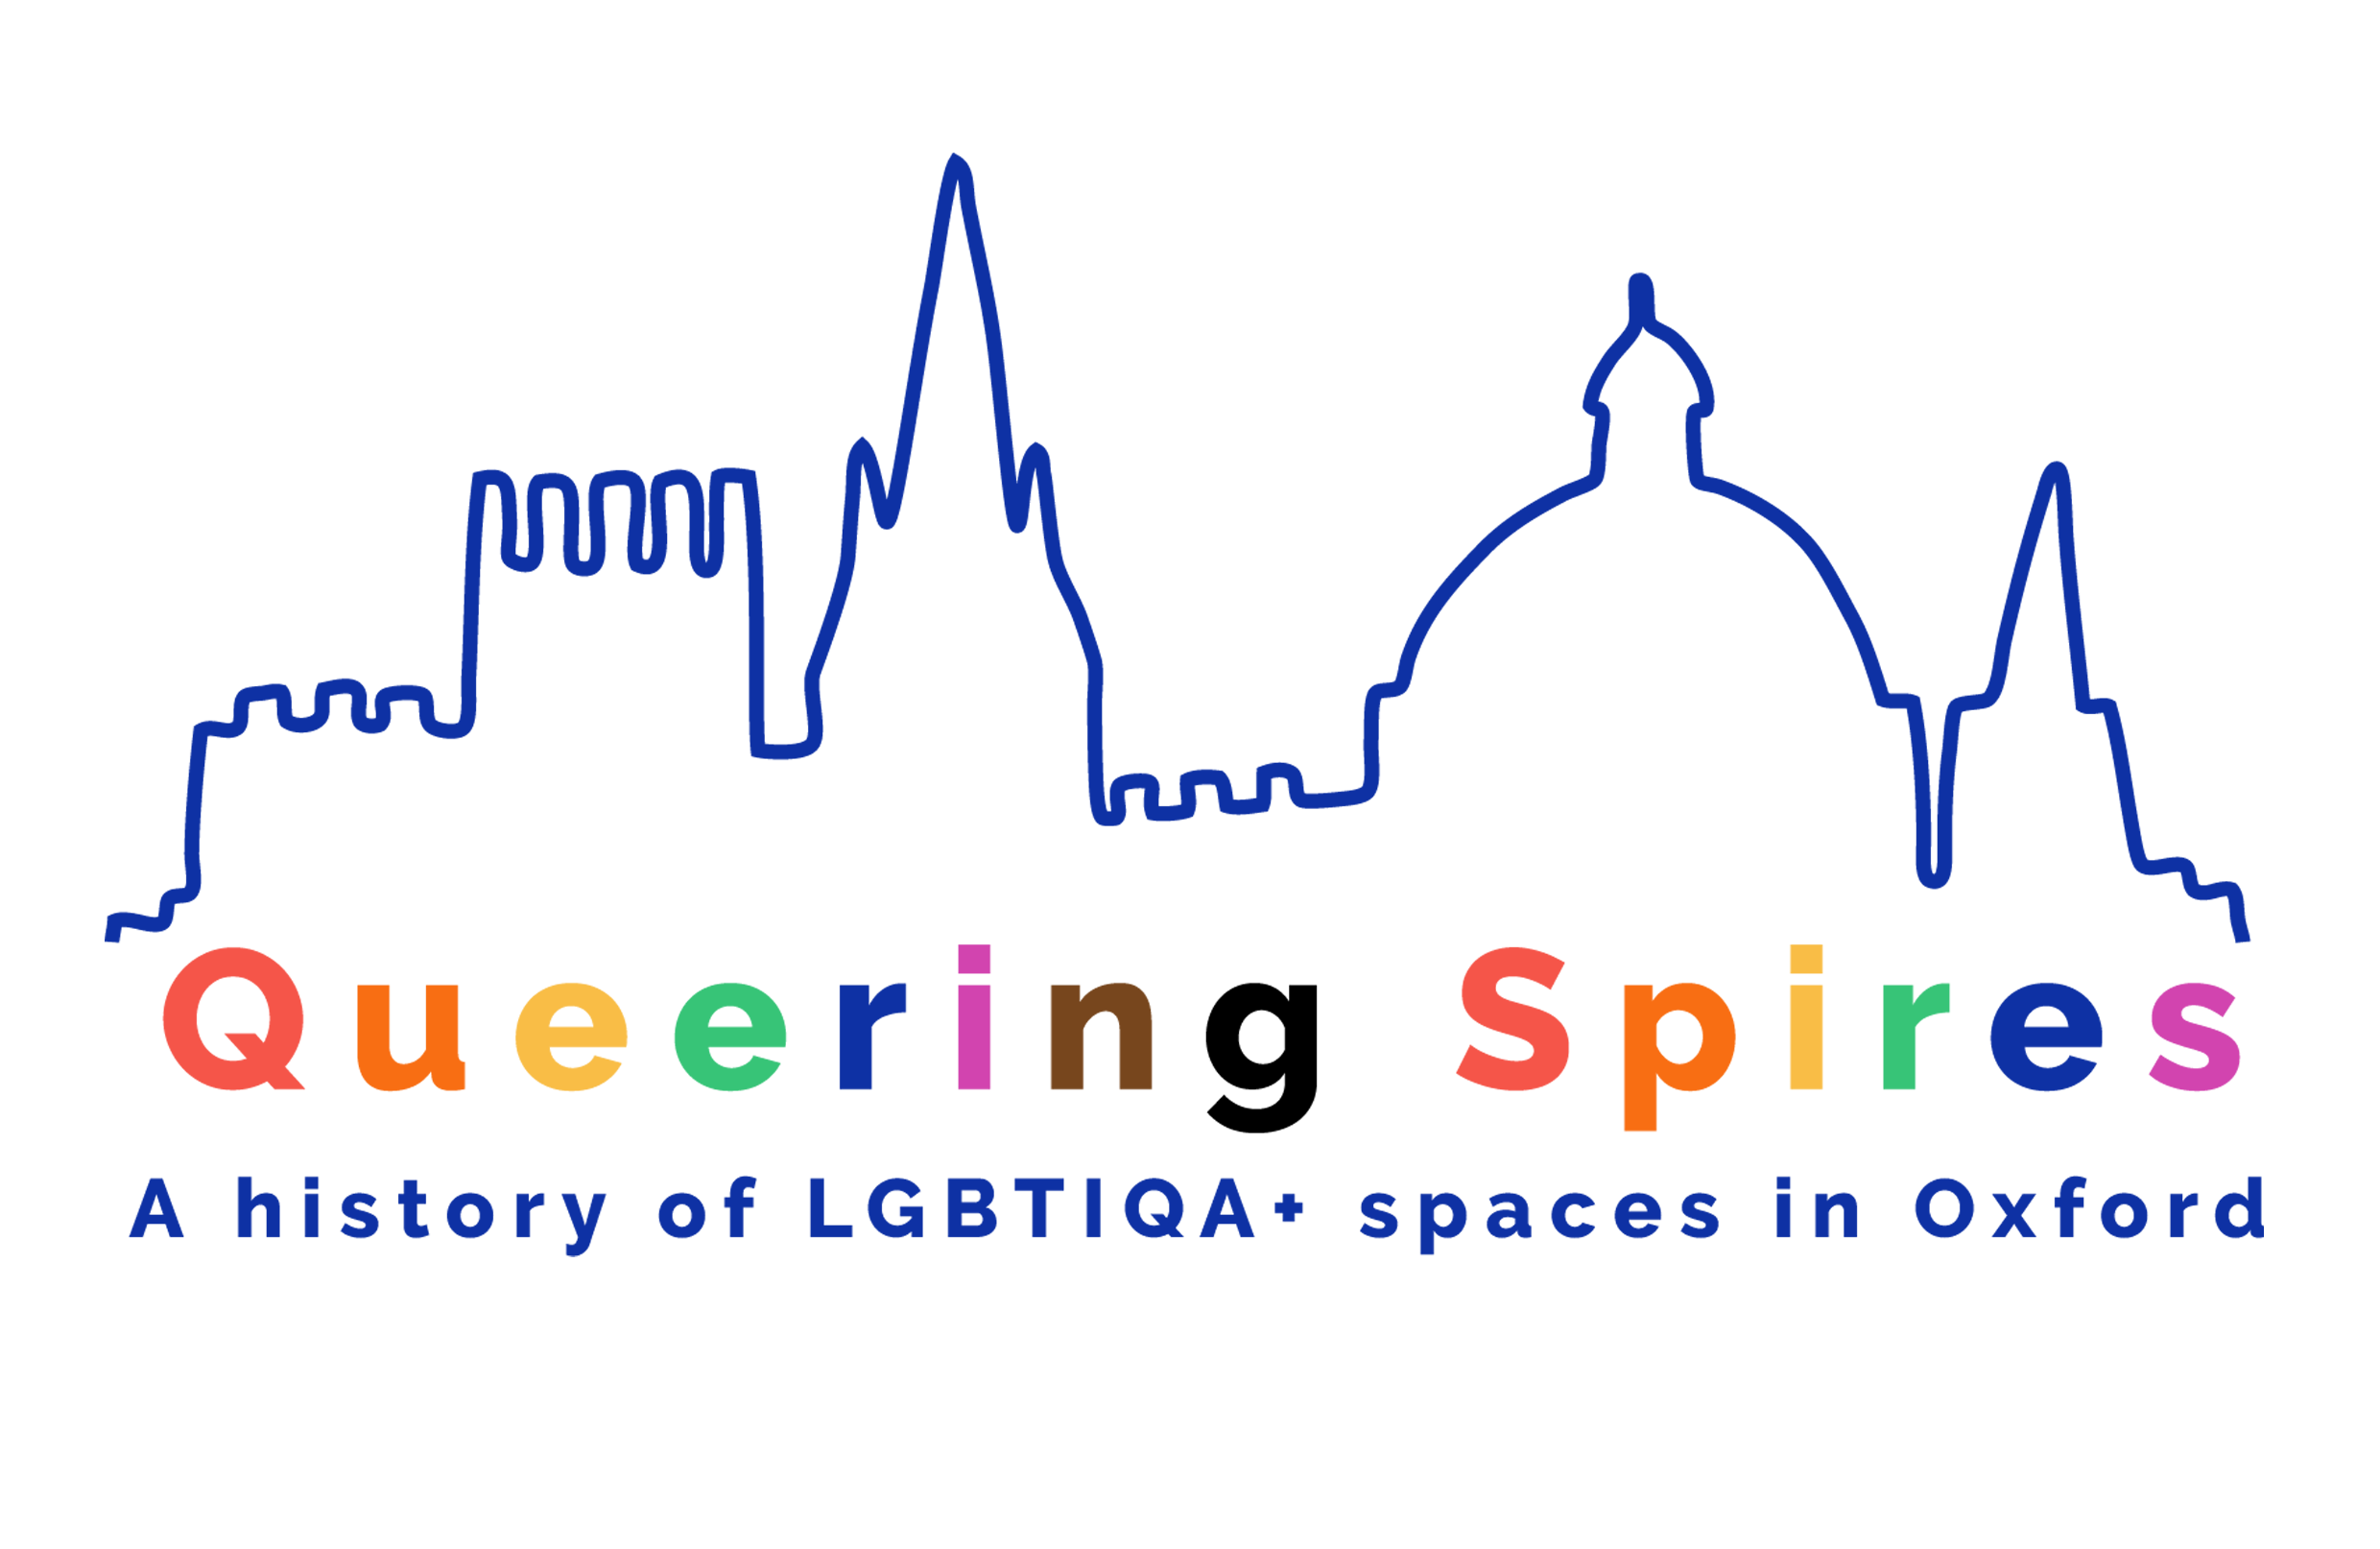 Project logo: an outline of skyline with the Oxford spires, and text which reads Queering Spires: A history of LGBTIQA+ spaces in Oxford